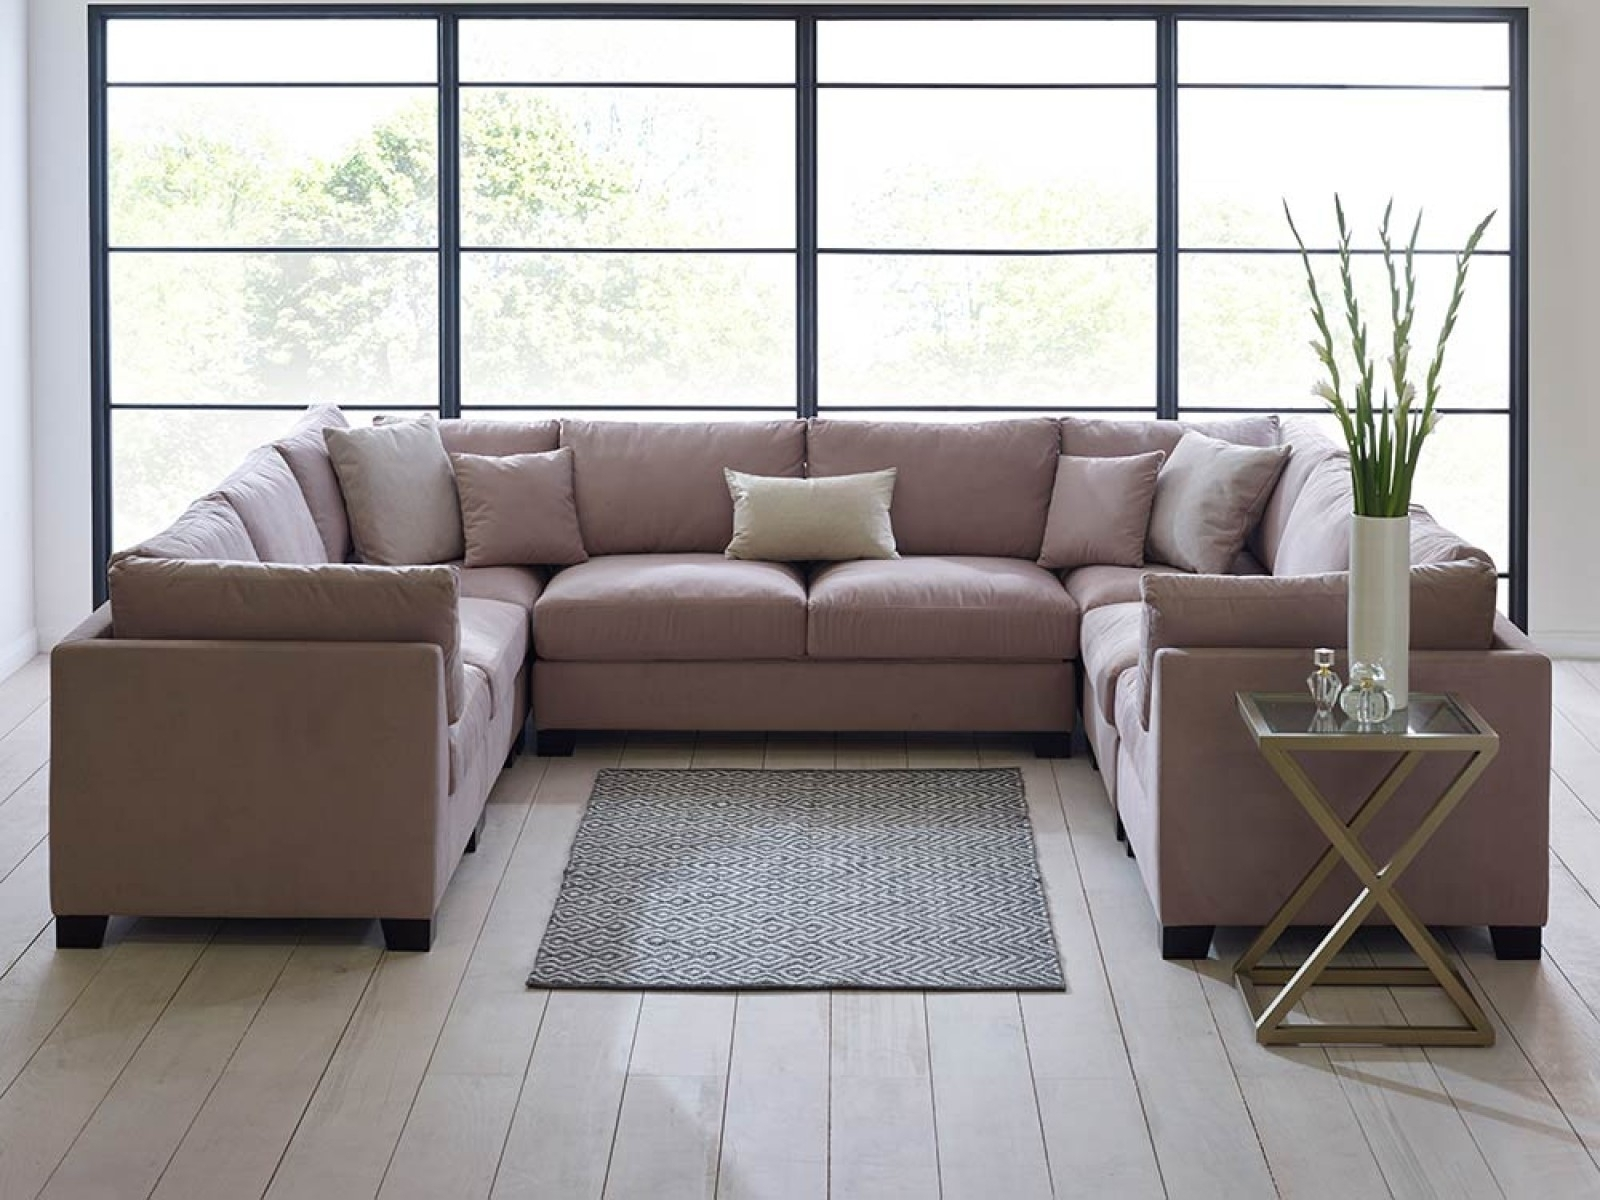 U Shaped Leather Sectional Sofas Intended For Recent U Shaped Sofa – Google Search (View 4 of 15)